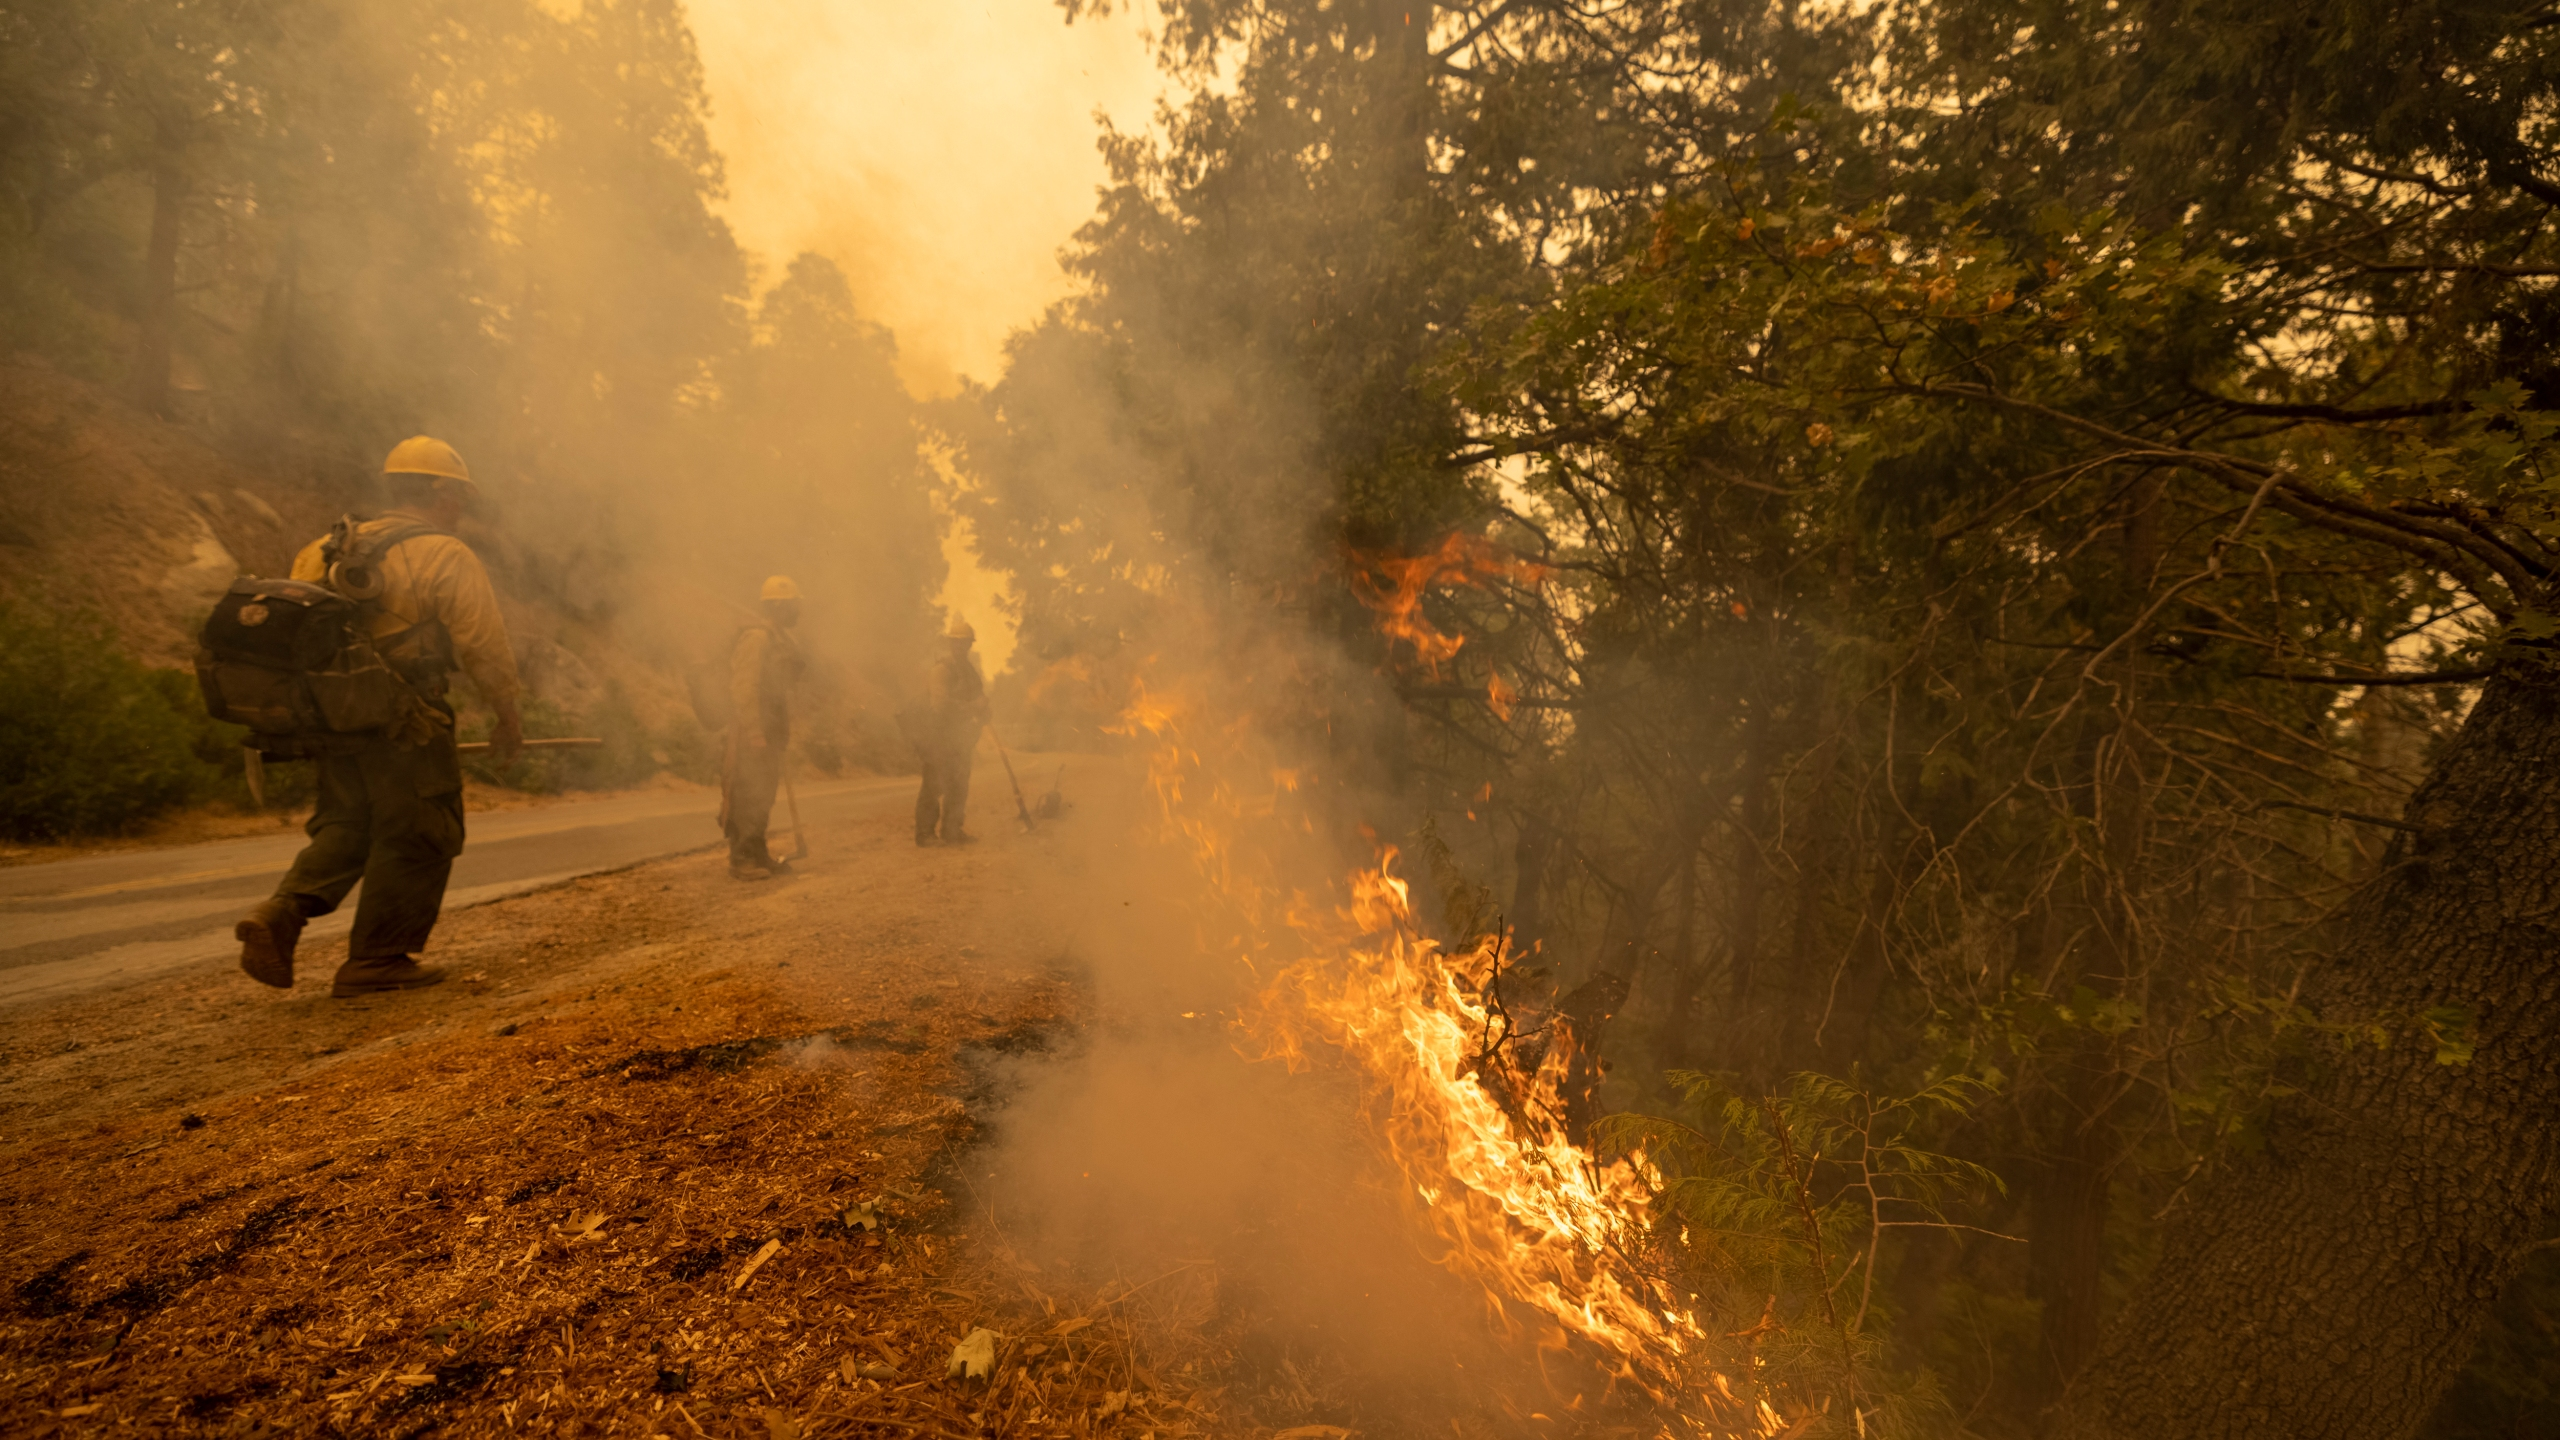 Firefighters tend to a backfire set to battle the Windy Fire on Sept. 25, 2021, south of California Hot Springs, California. (David McNew/Getty Images)